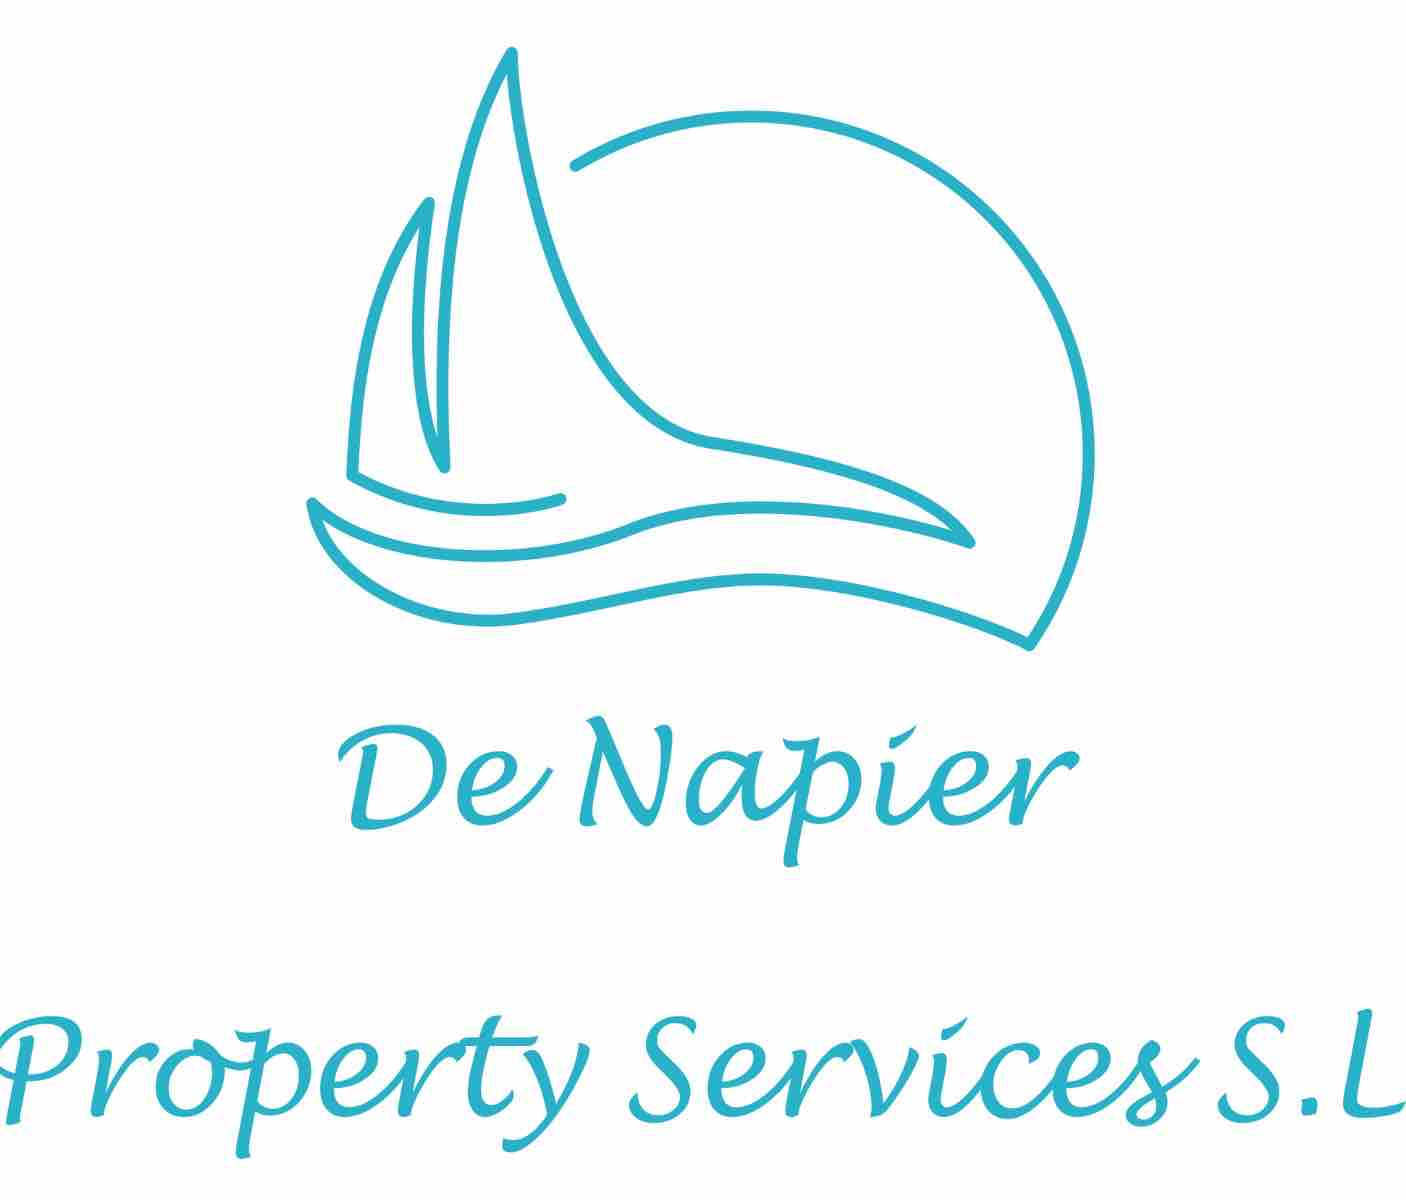 De Napier Property Services